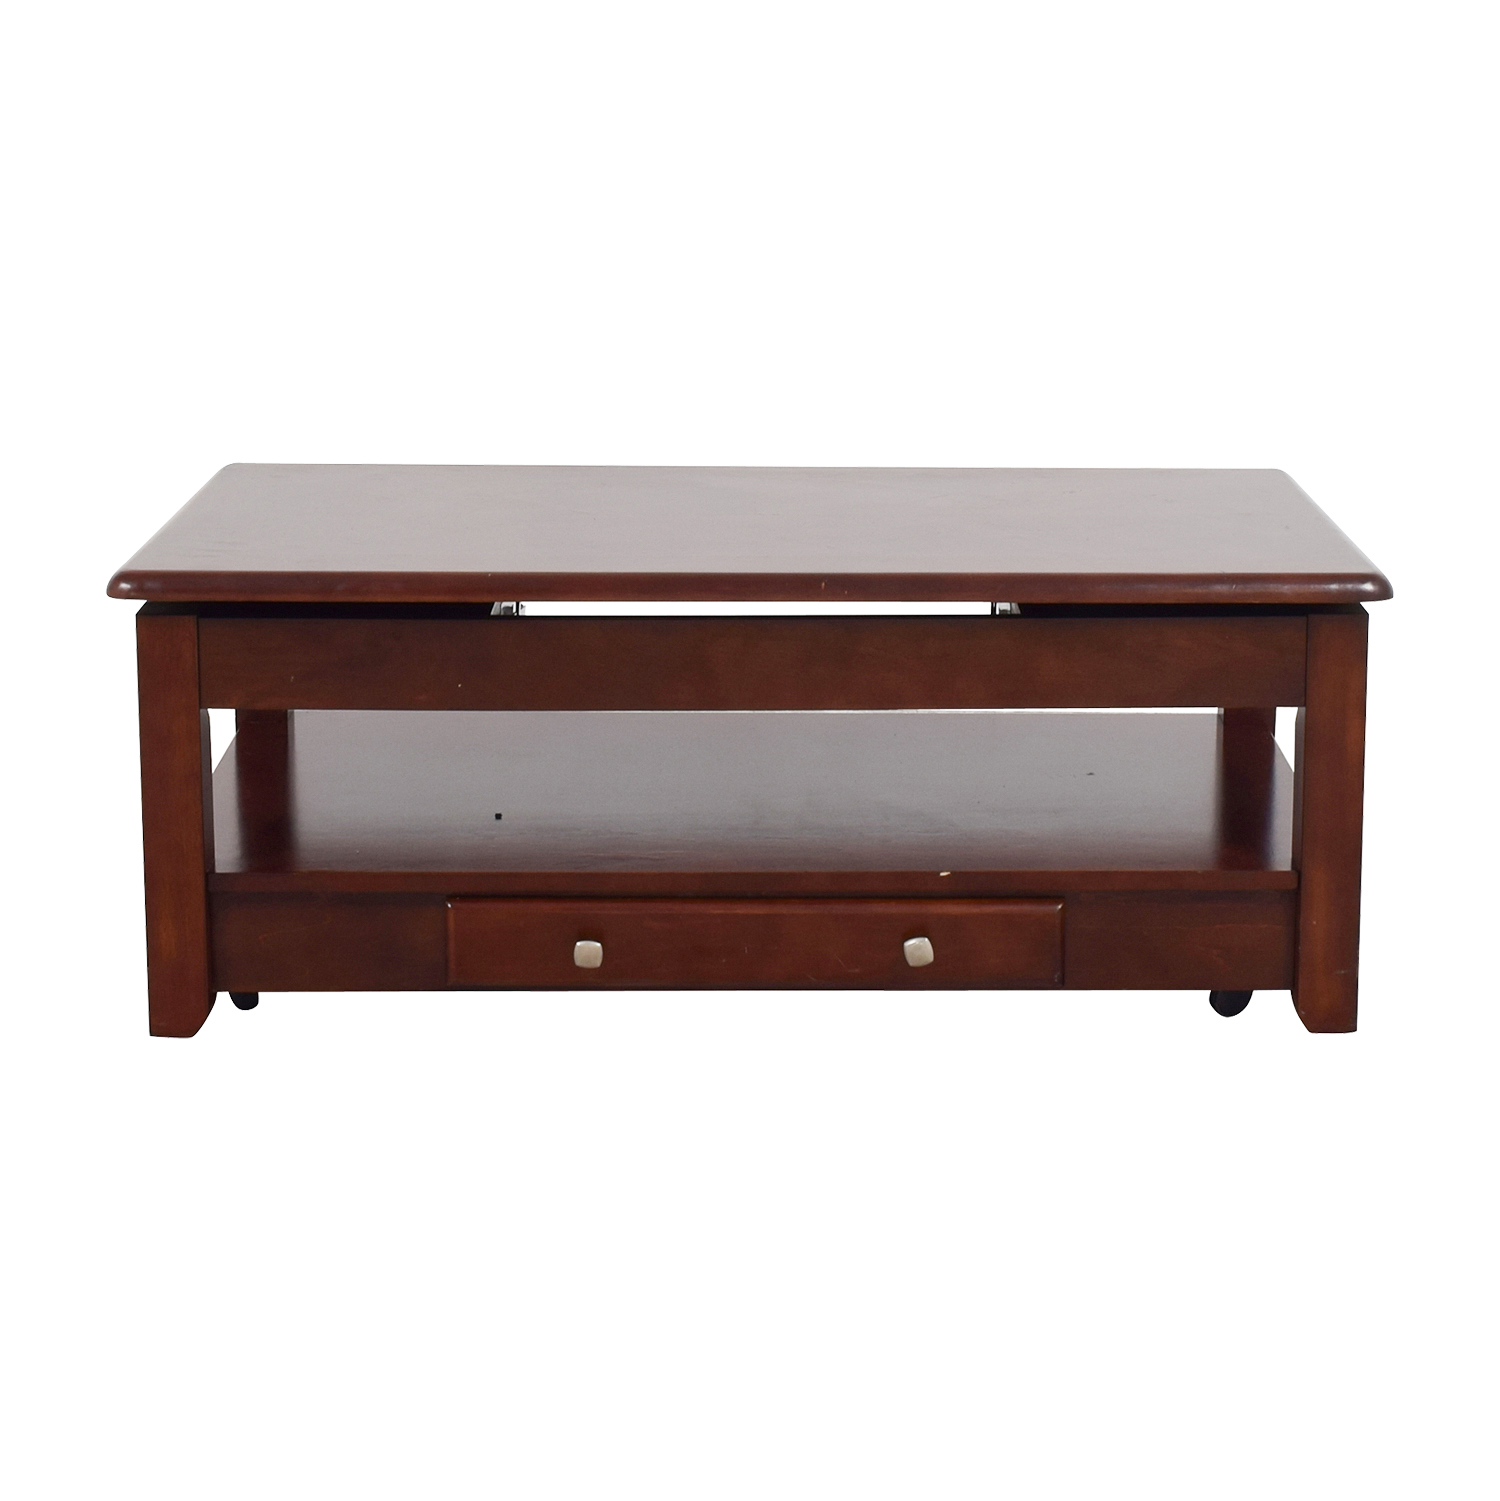 shop Raymour & Flanigan Lift Top Coffee Table Raymour & Flanigan Sofas